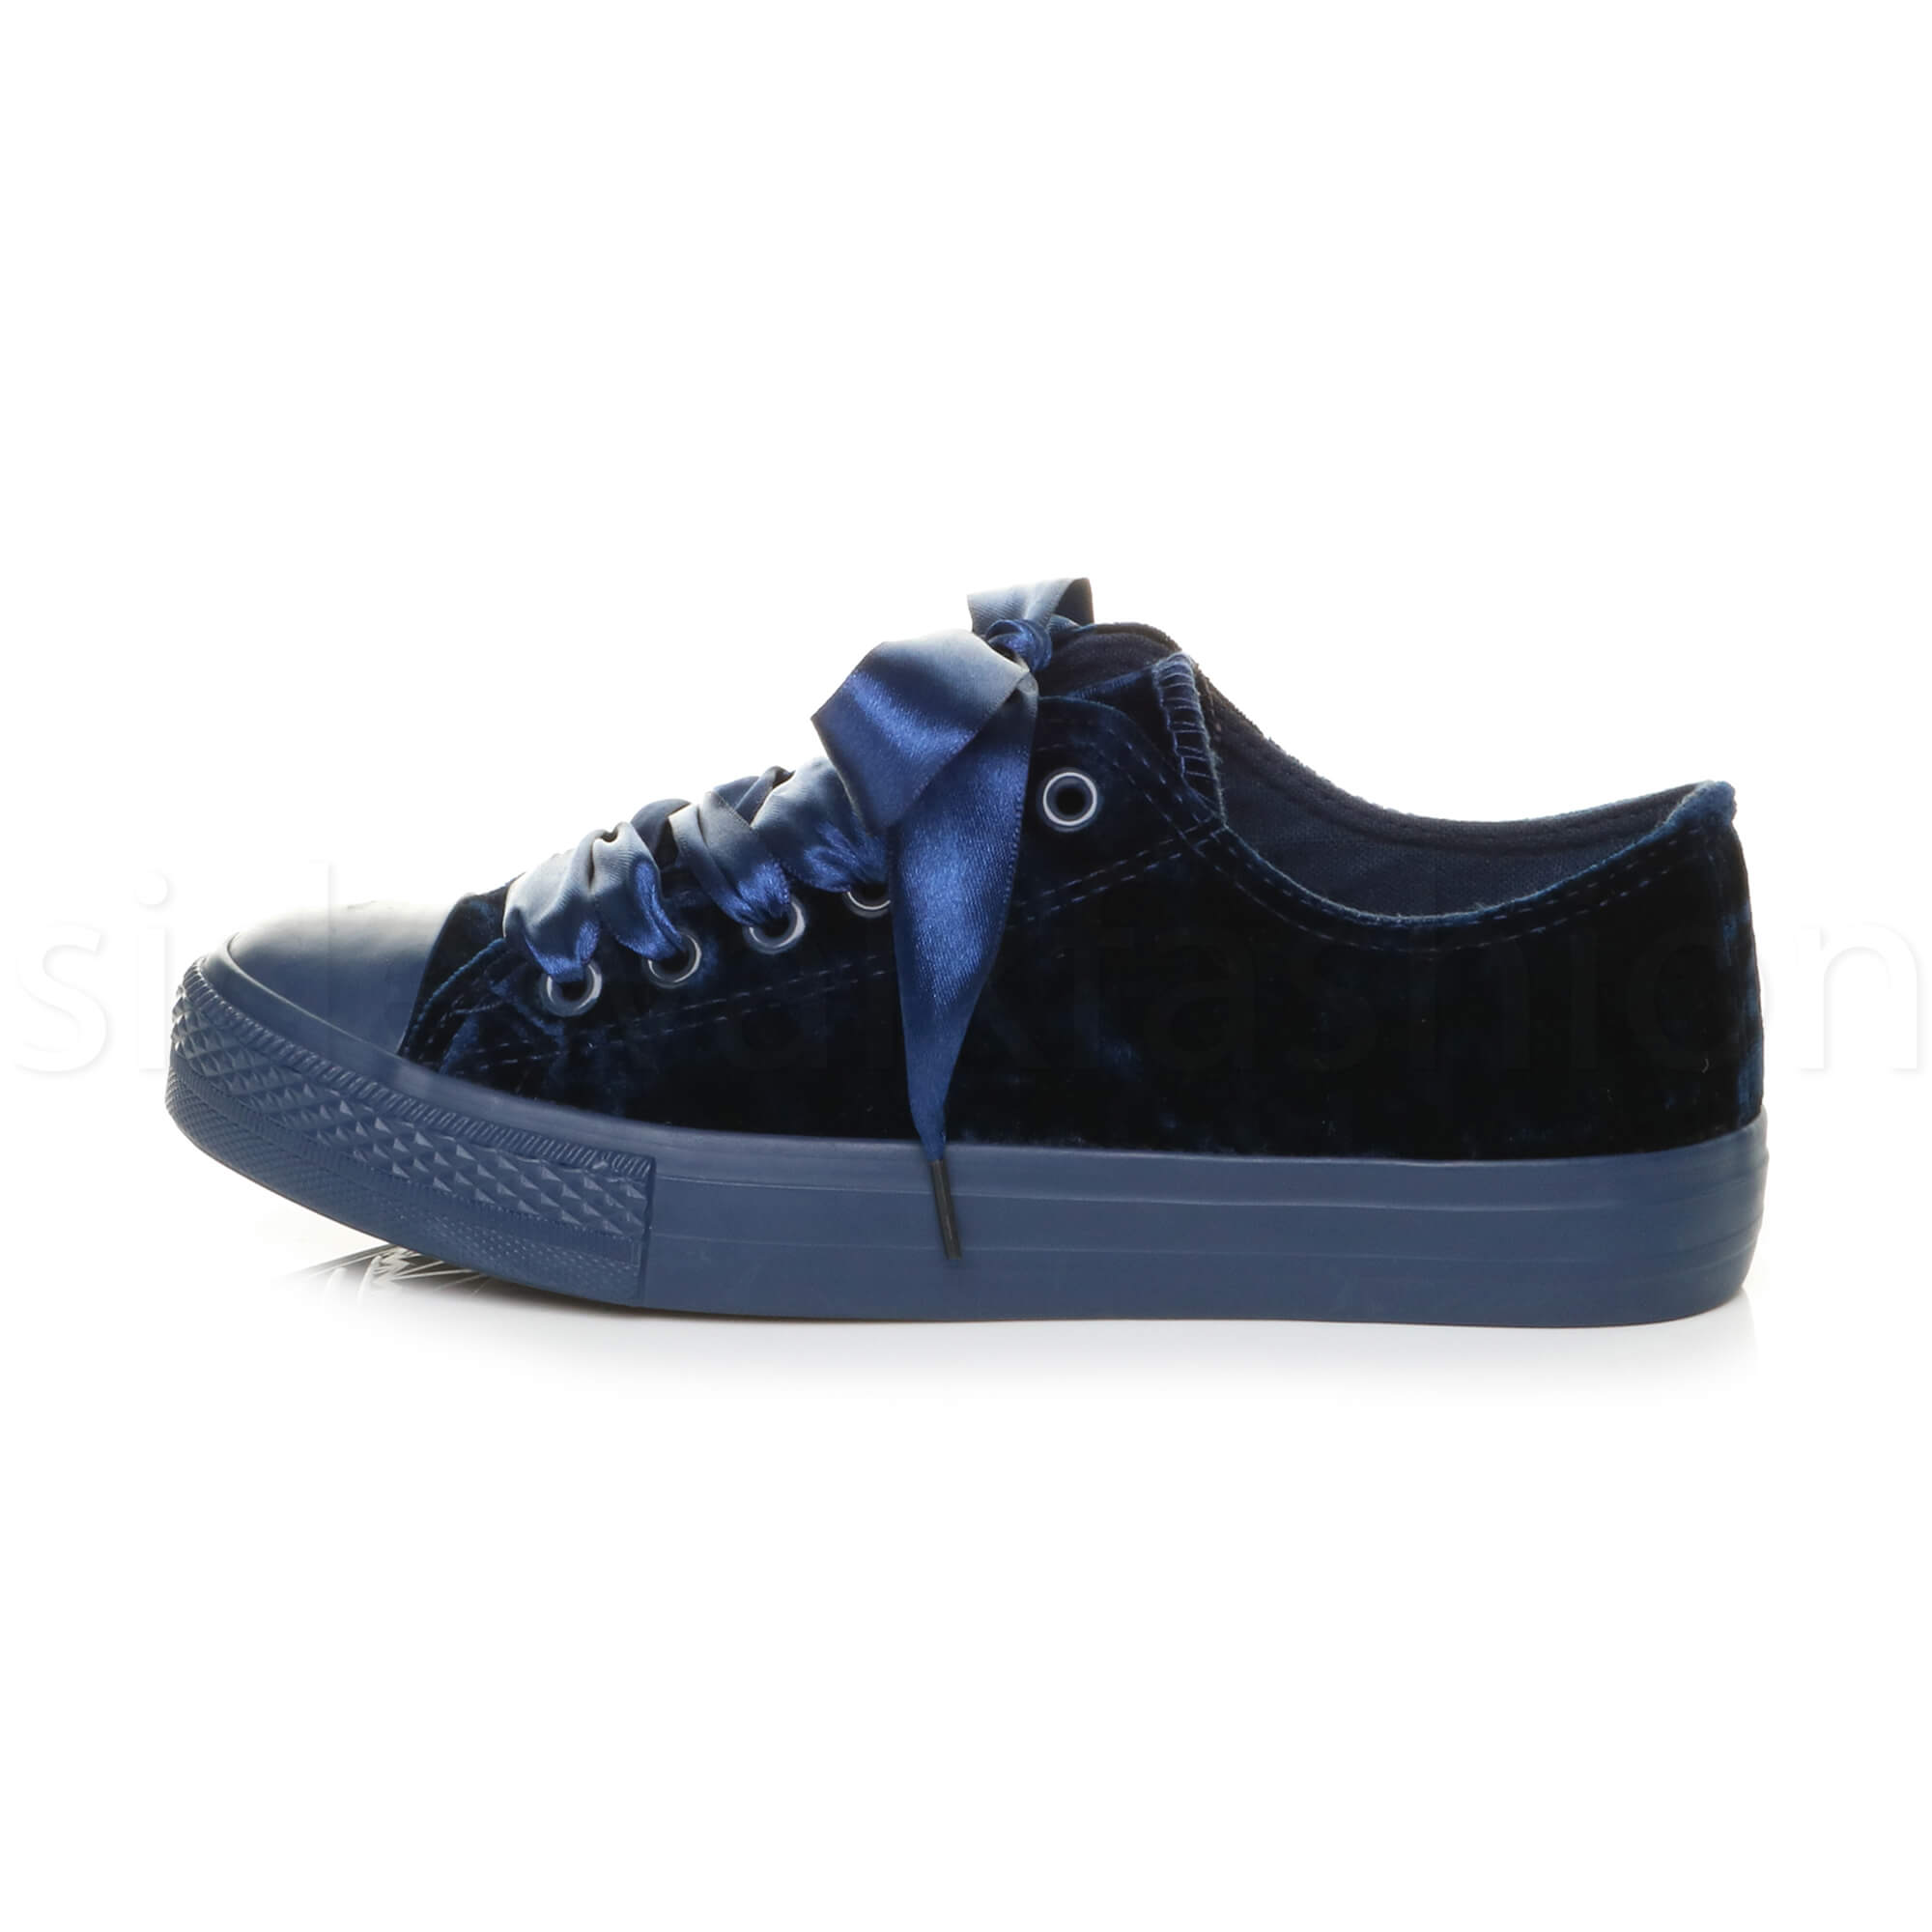 Womens ladies flat lace up ribbon velvet trainers plimsolls lo-top sneakers size